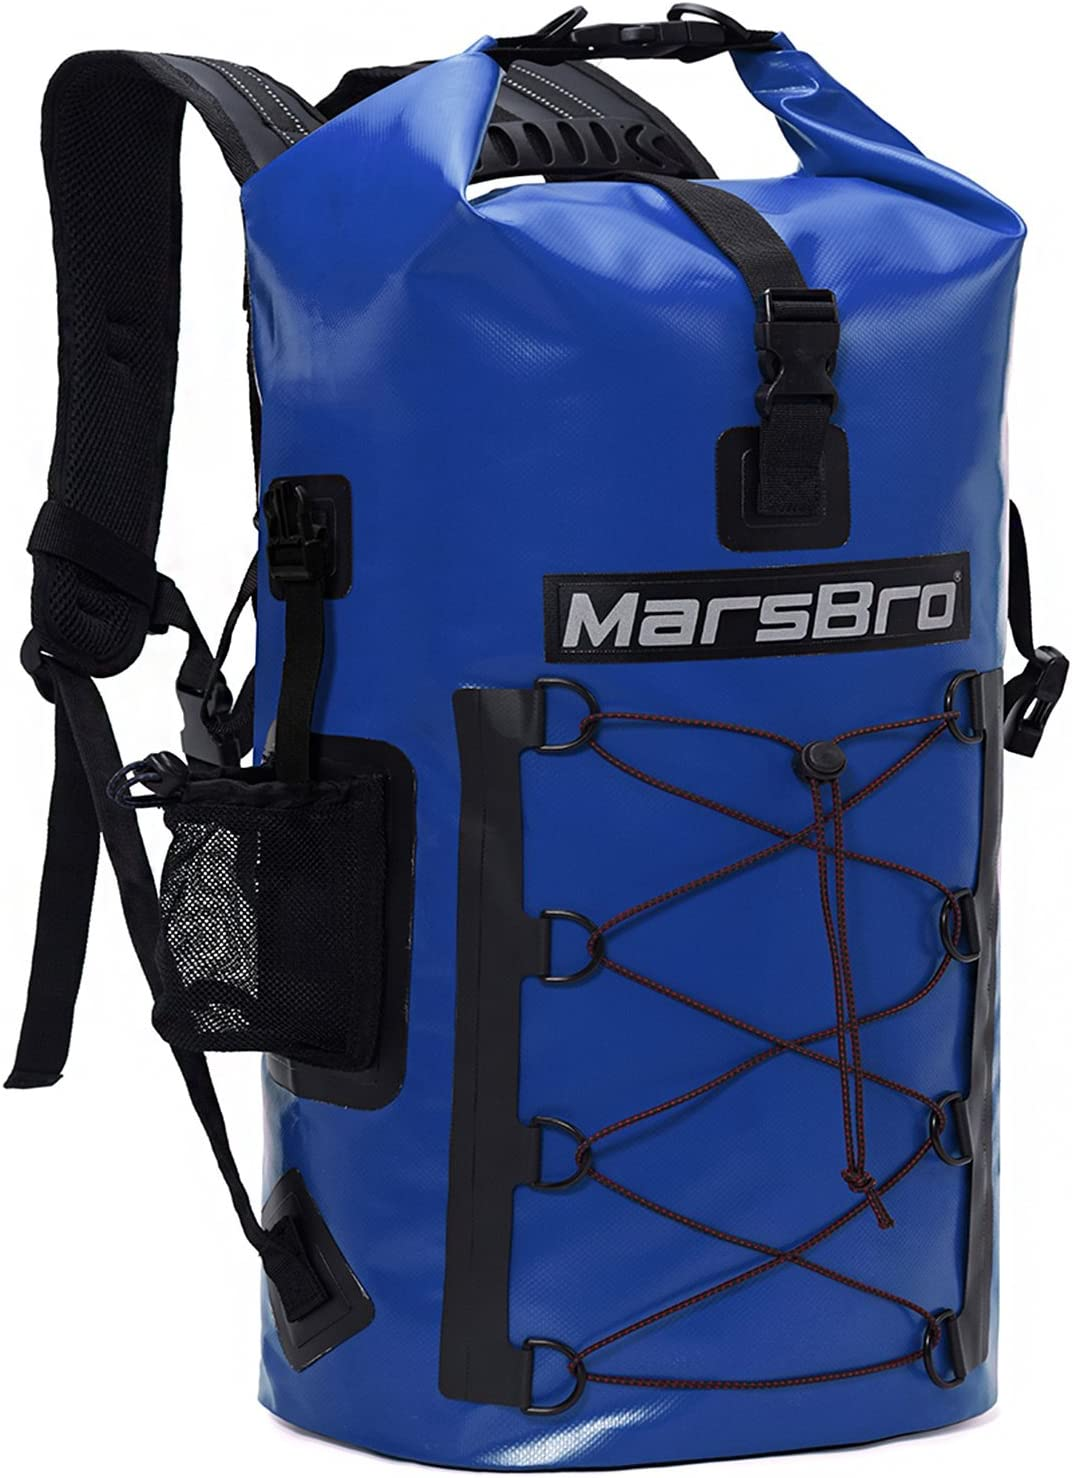 Amazon Com Marsbro Waterproof Backpack Dry Bag 1000d Pvc 35l 50l Hf Welded Seams Roll Top Closure For Kayaking Canoeing Floating River Tracing Sailing With Waterproof Phone Pouch Blue 35l Sports